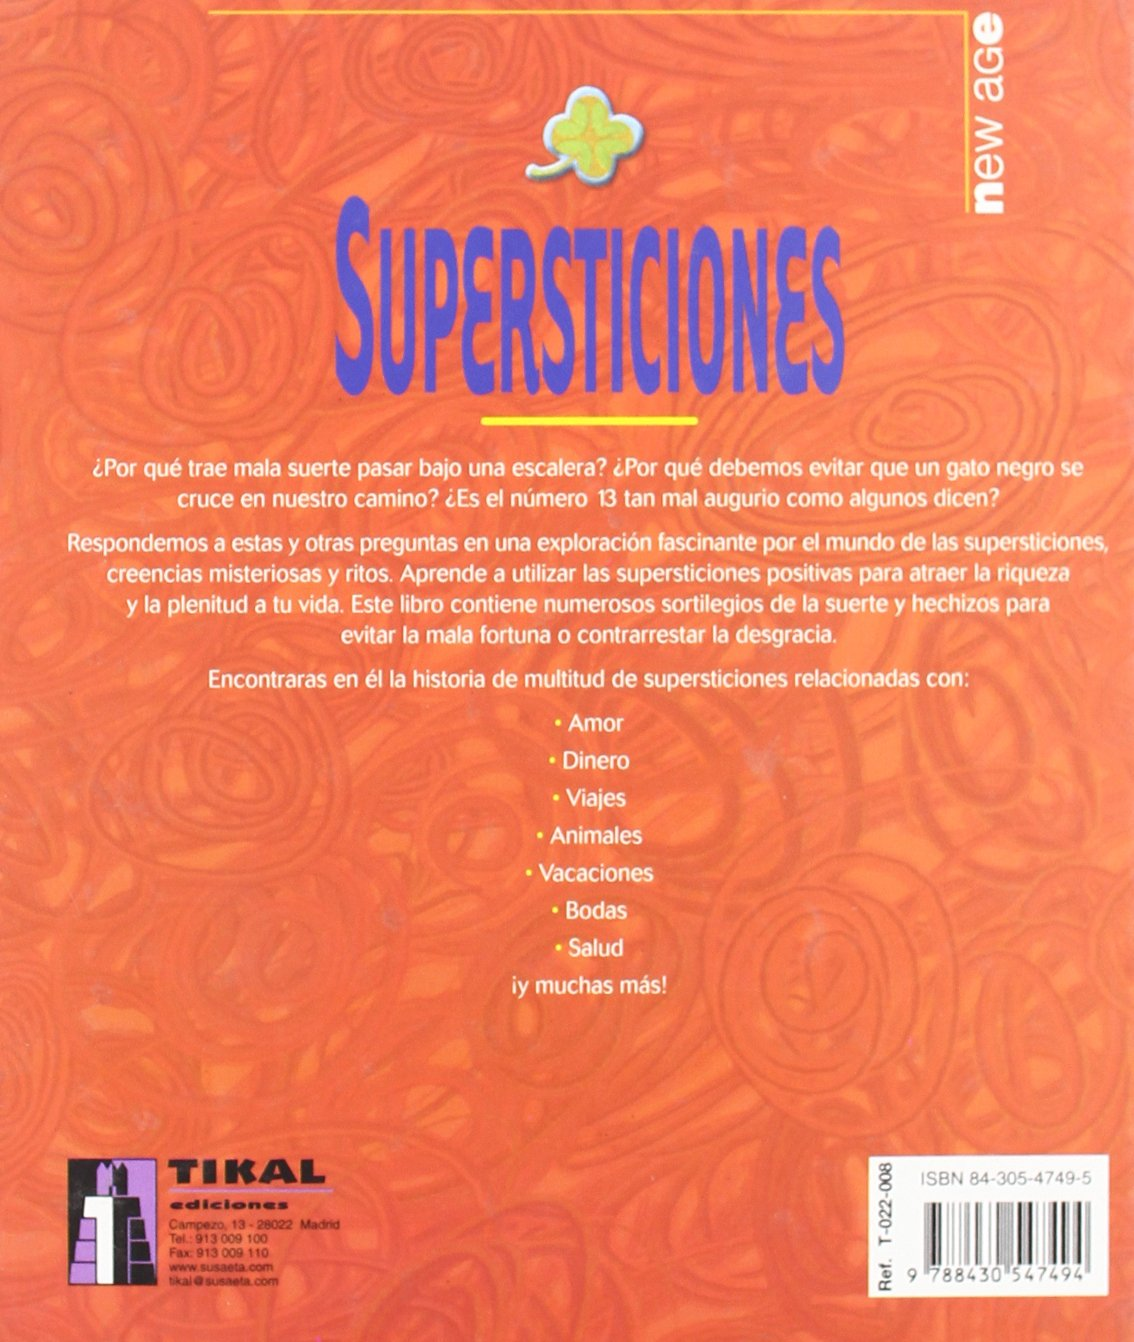 Supersticiones (New Age -Tikal): T-022-8: 9788430547494: Amazon.com: Books